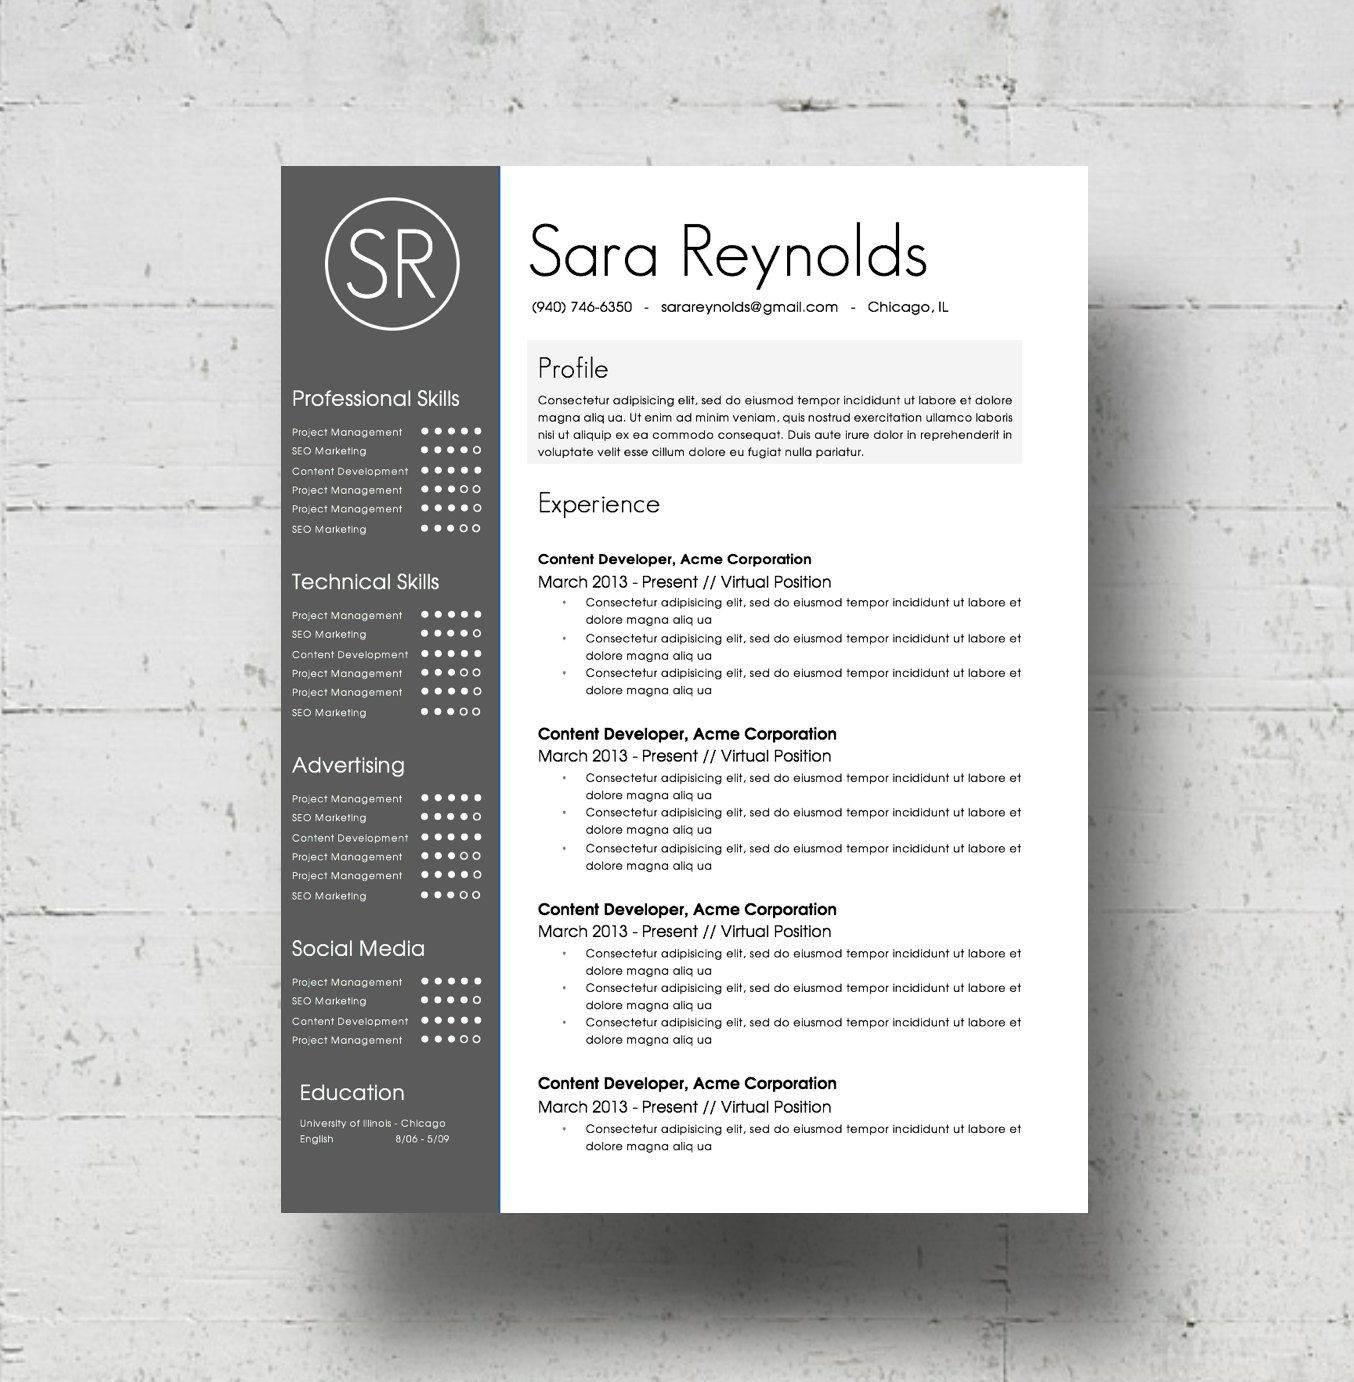 Resume Templates Word 2013 Resume Template & Cover Letter Template Cv Template Wbusiness